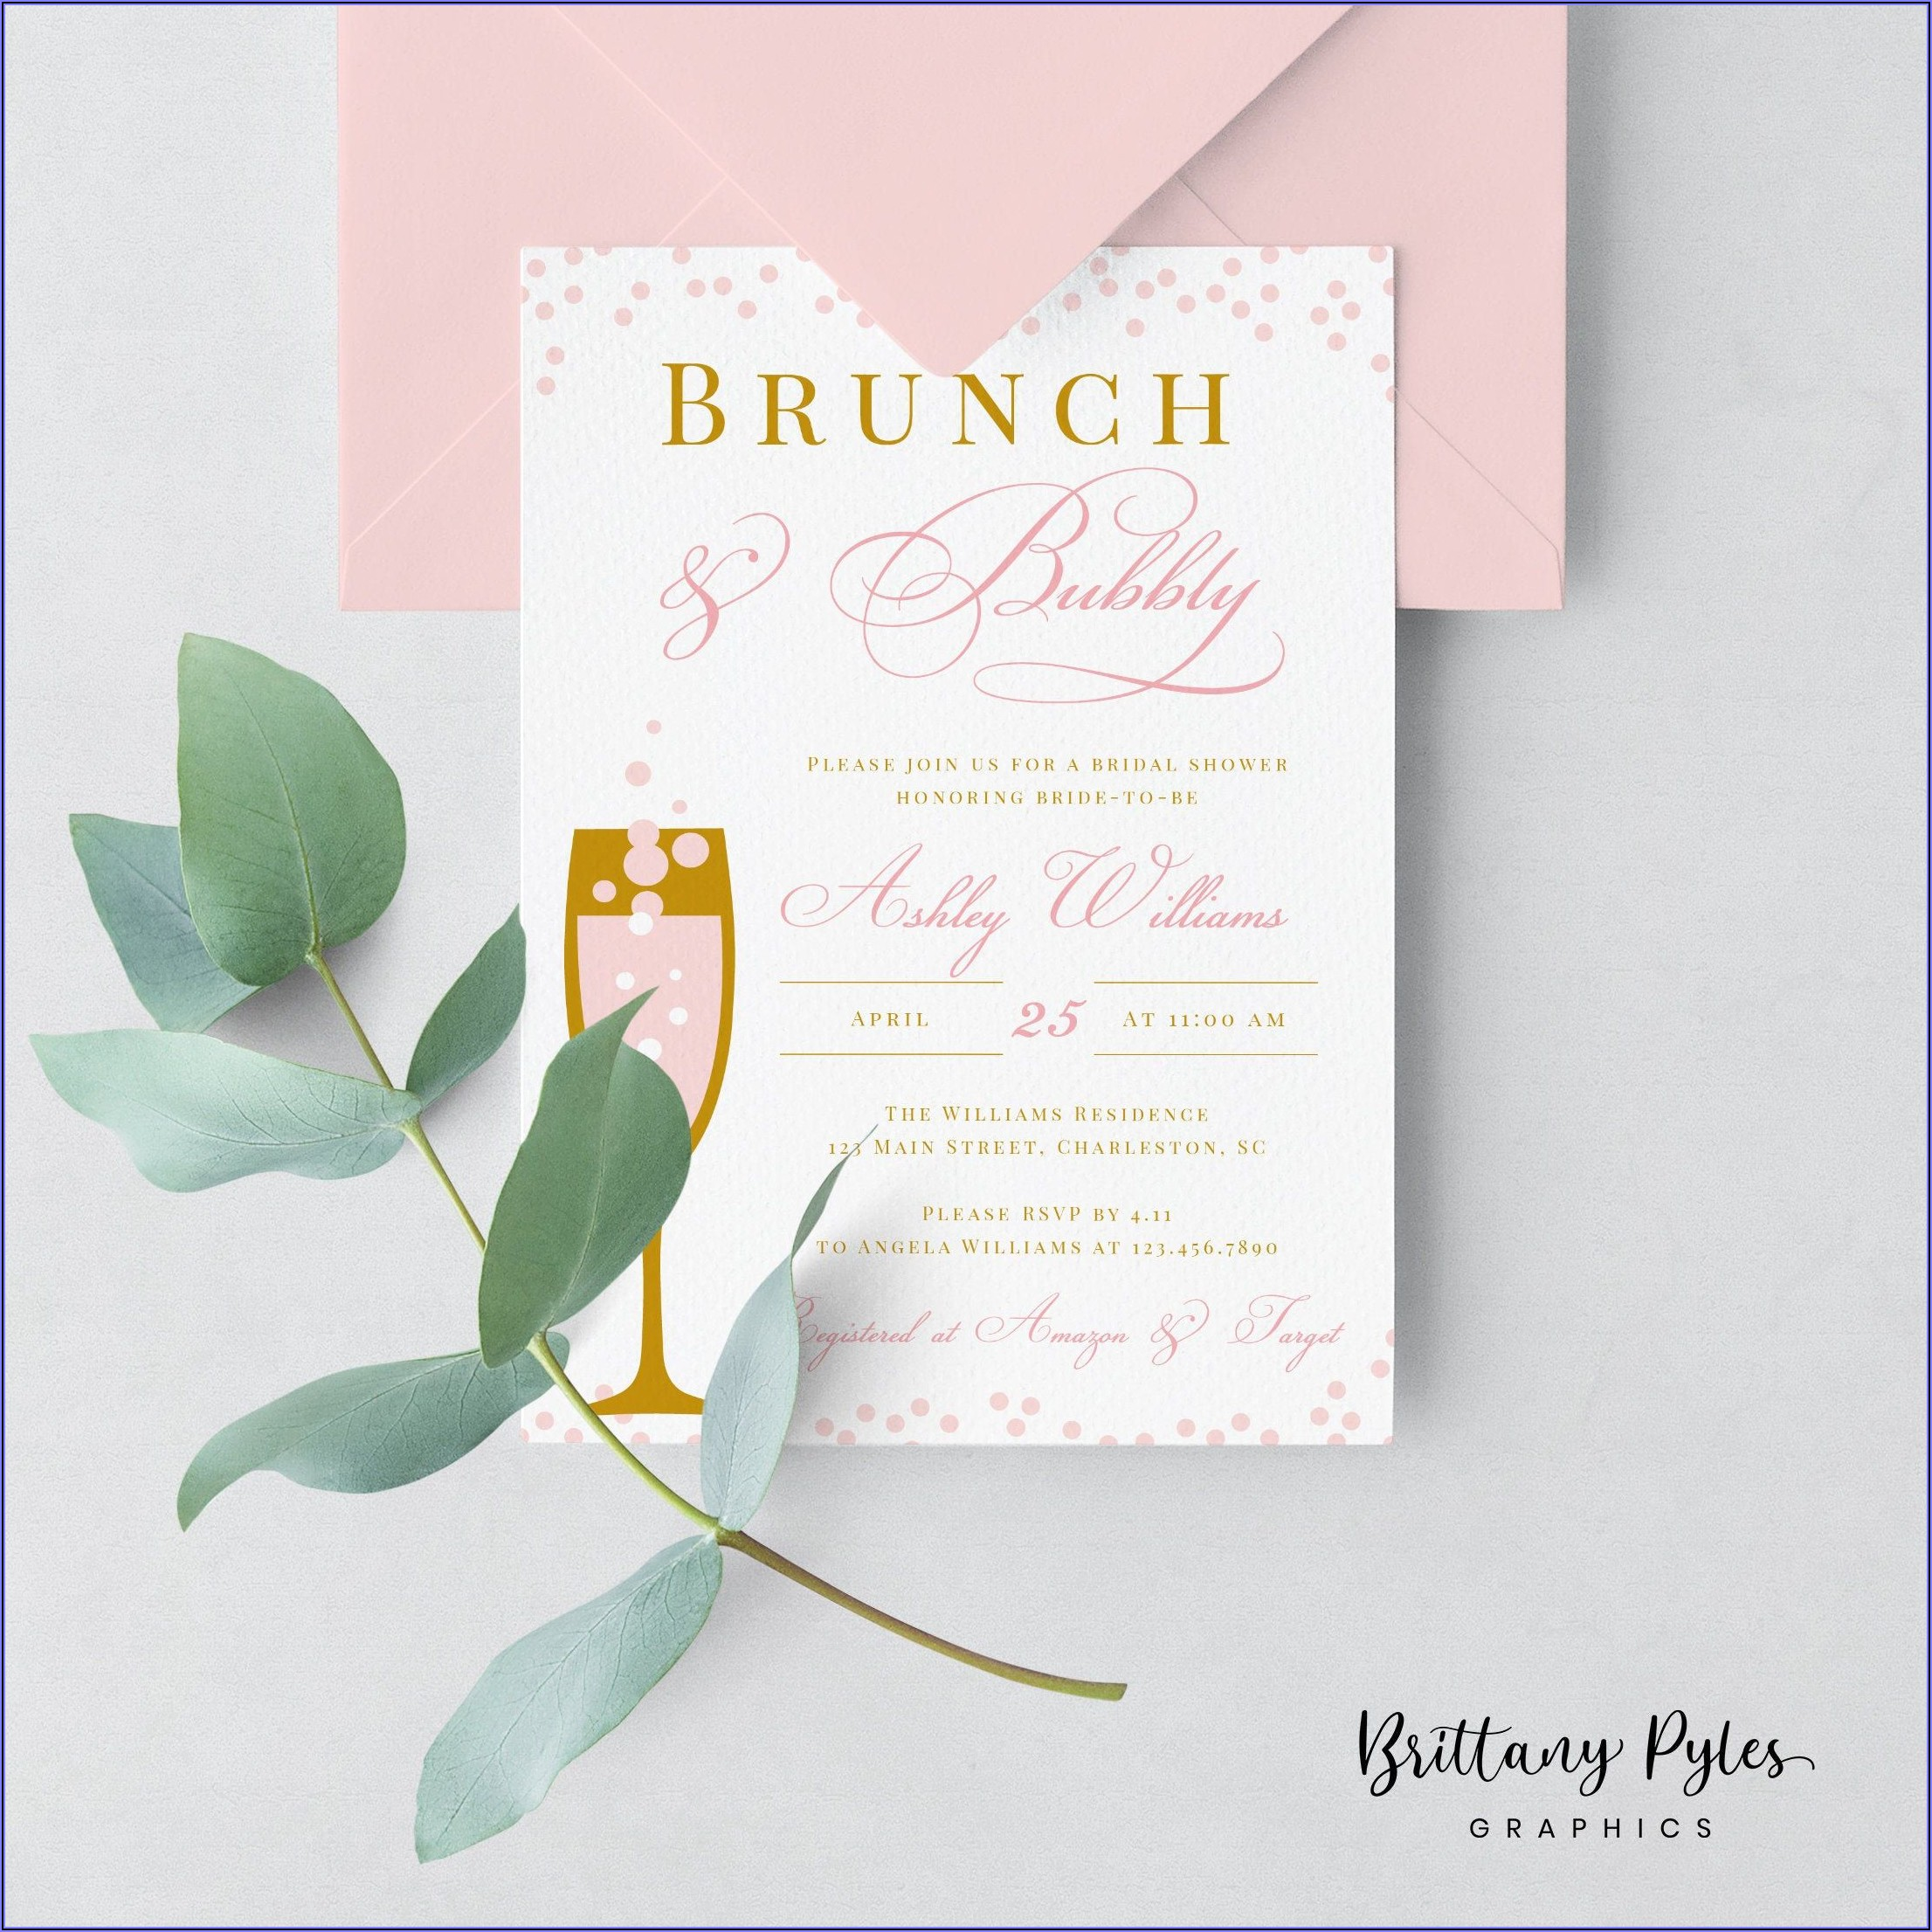 Brunch And Bubbly Bridal Shower Invitations Etsy